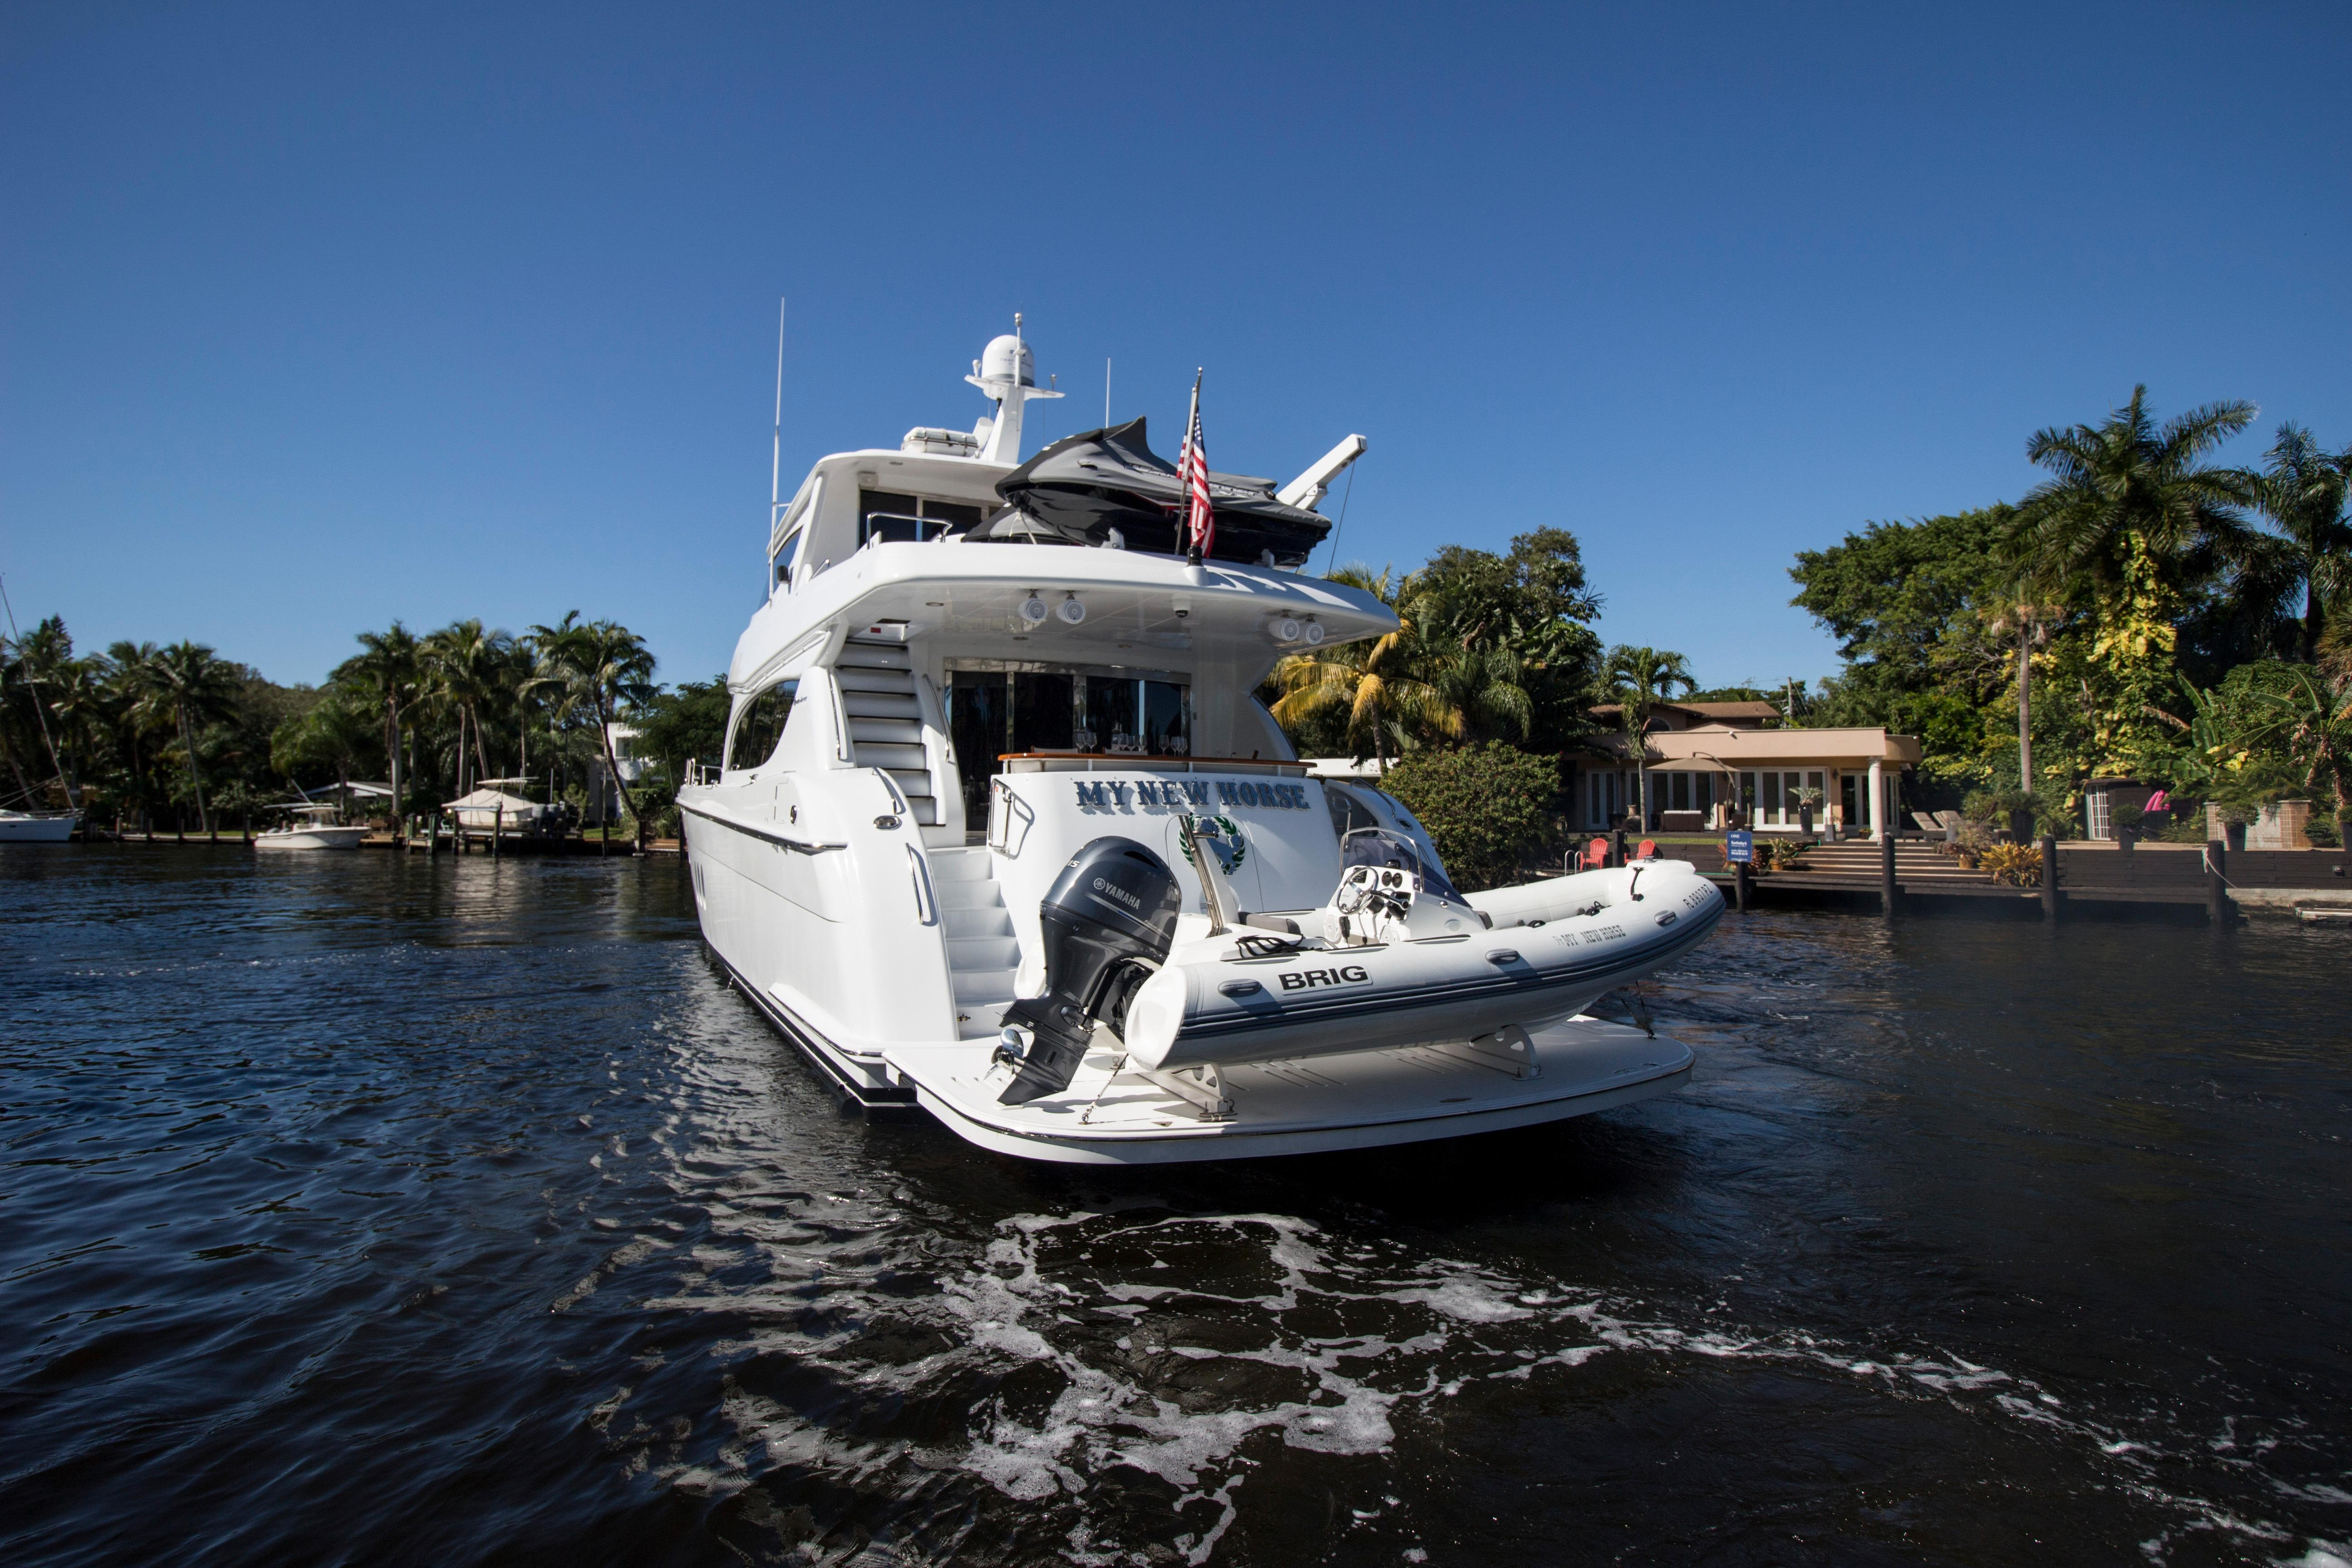 2006 hatteras 80 motor yacht sky lounge for sale for 80 hatteras motor yacht